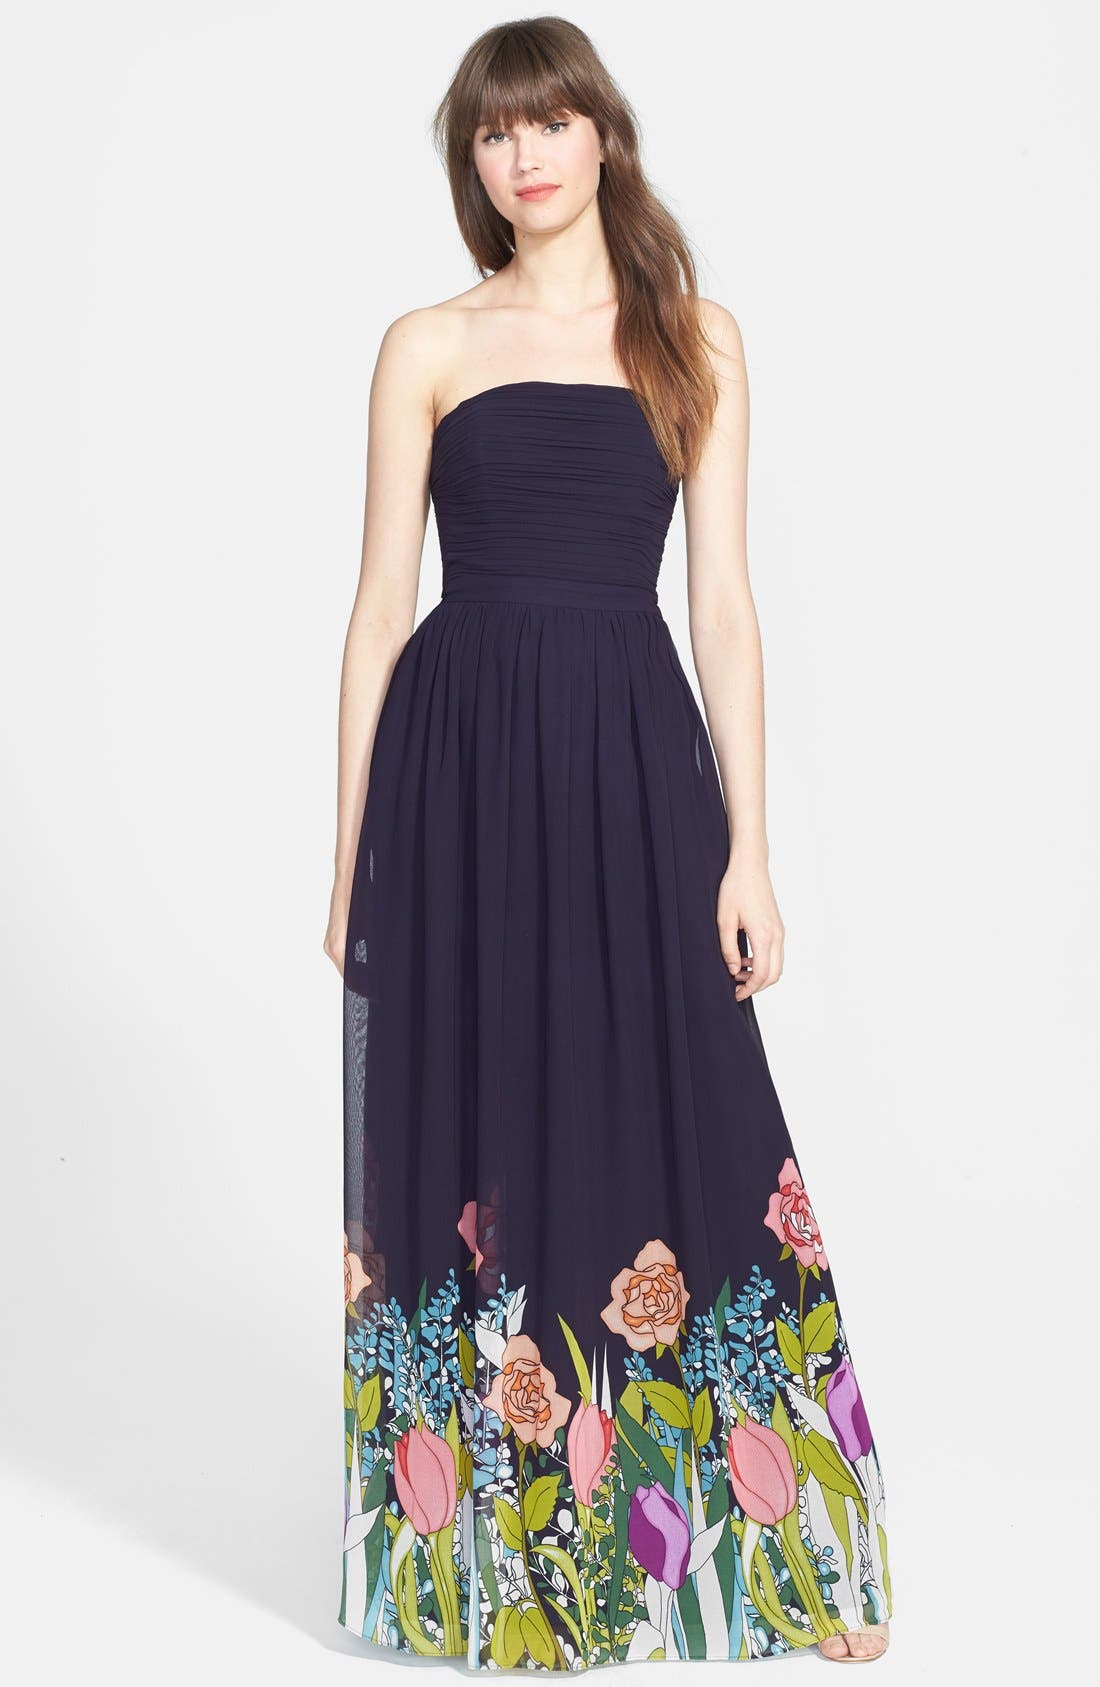 Main Image - ERIN erin fetherston 'Isabelle' Print Strapless Gown